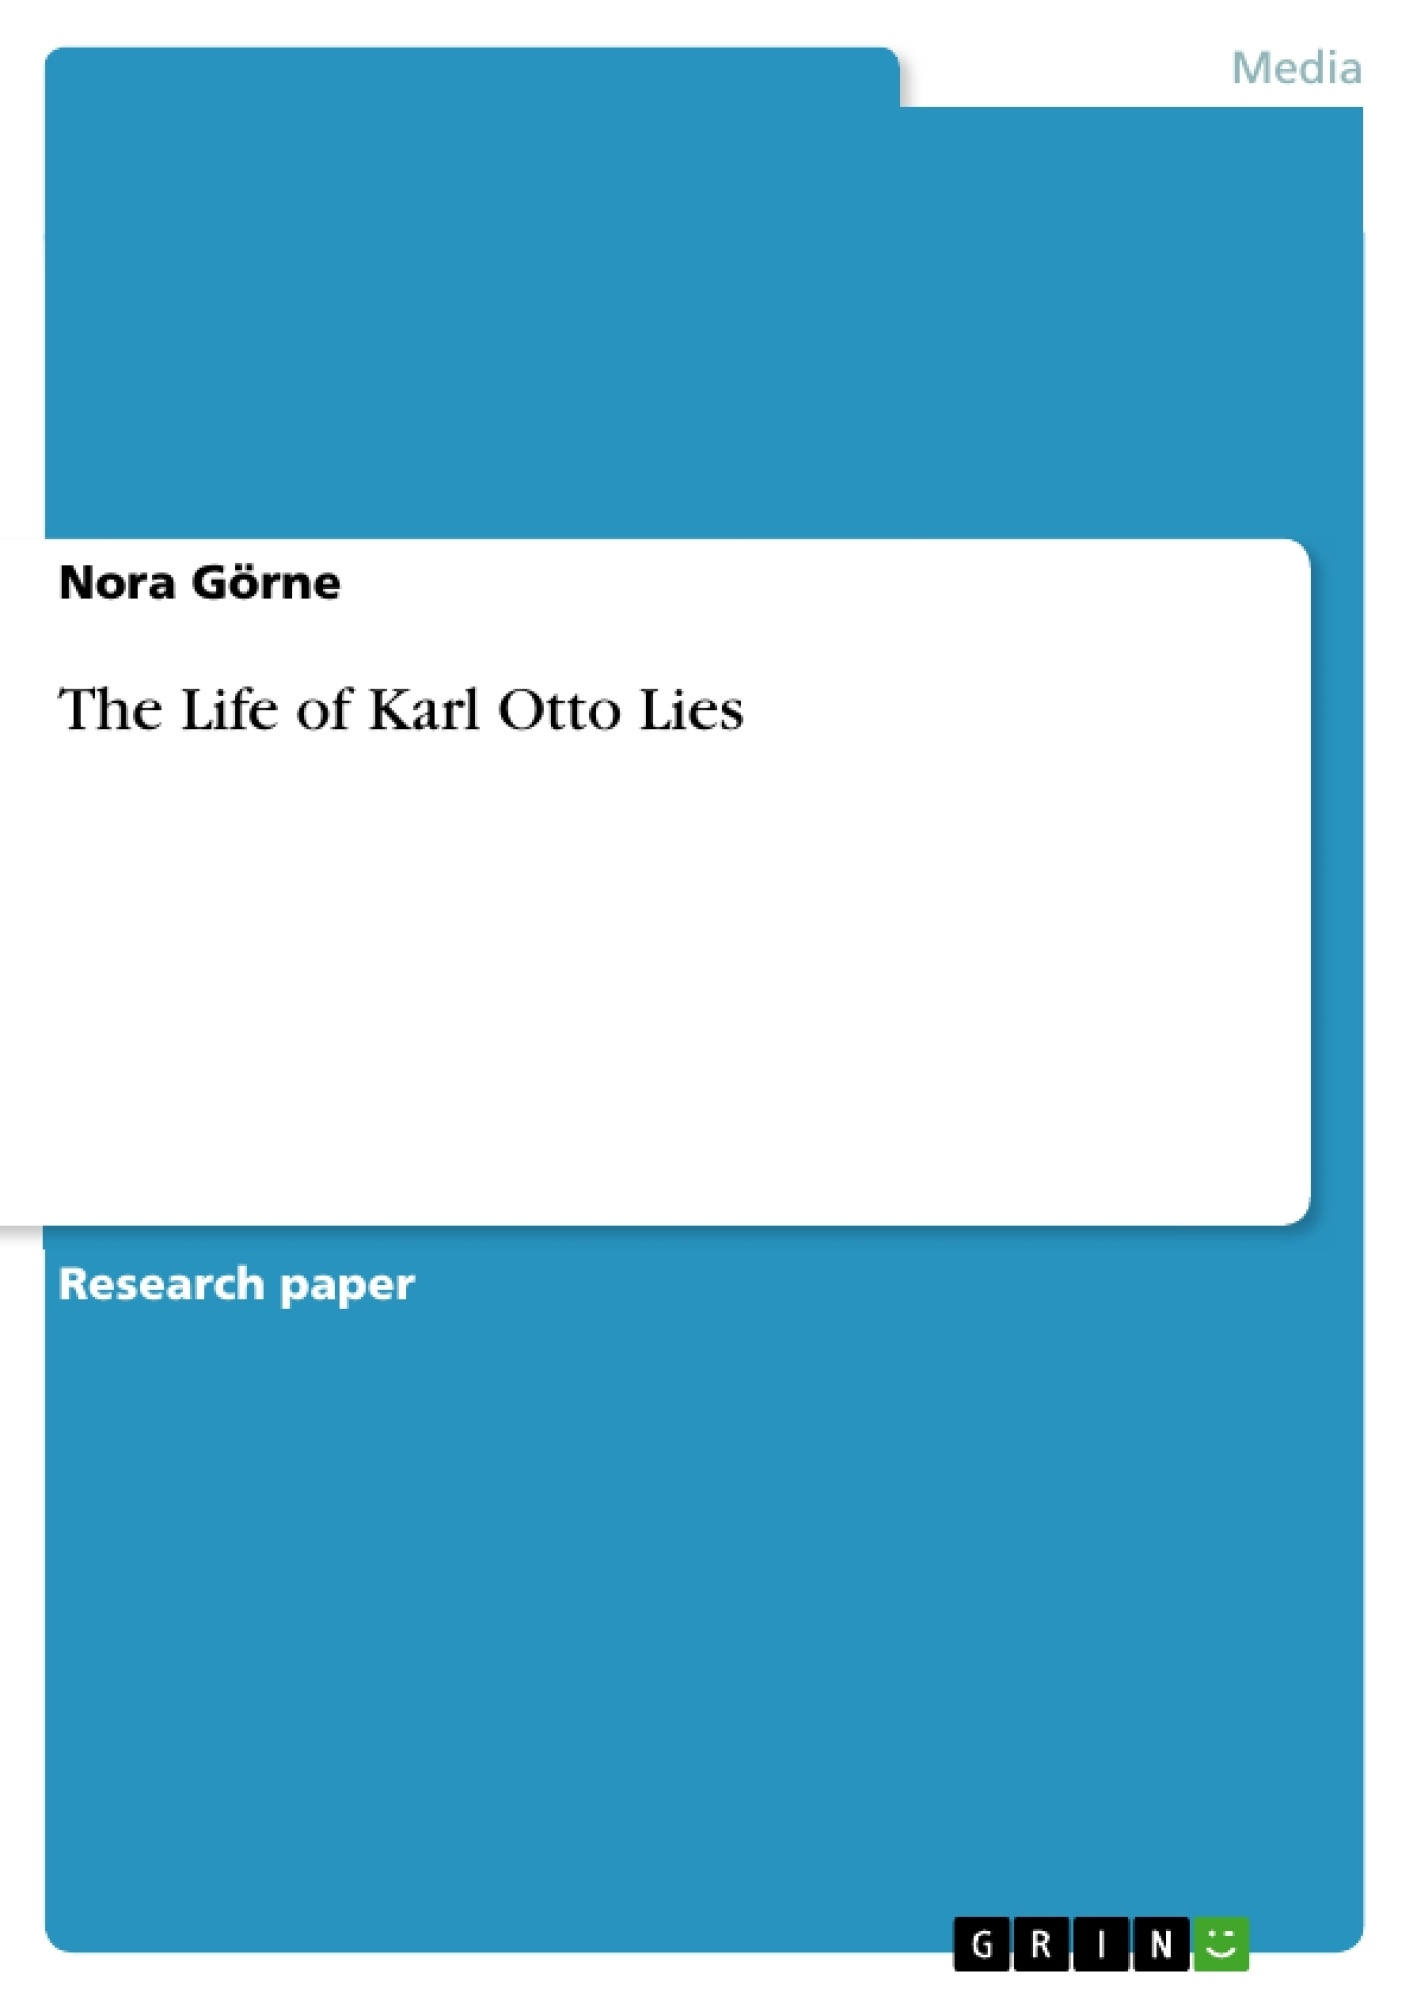 Title: The Life of Karl Otto Lies